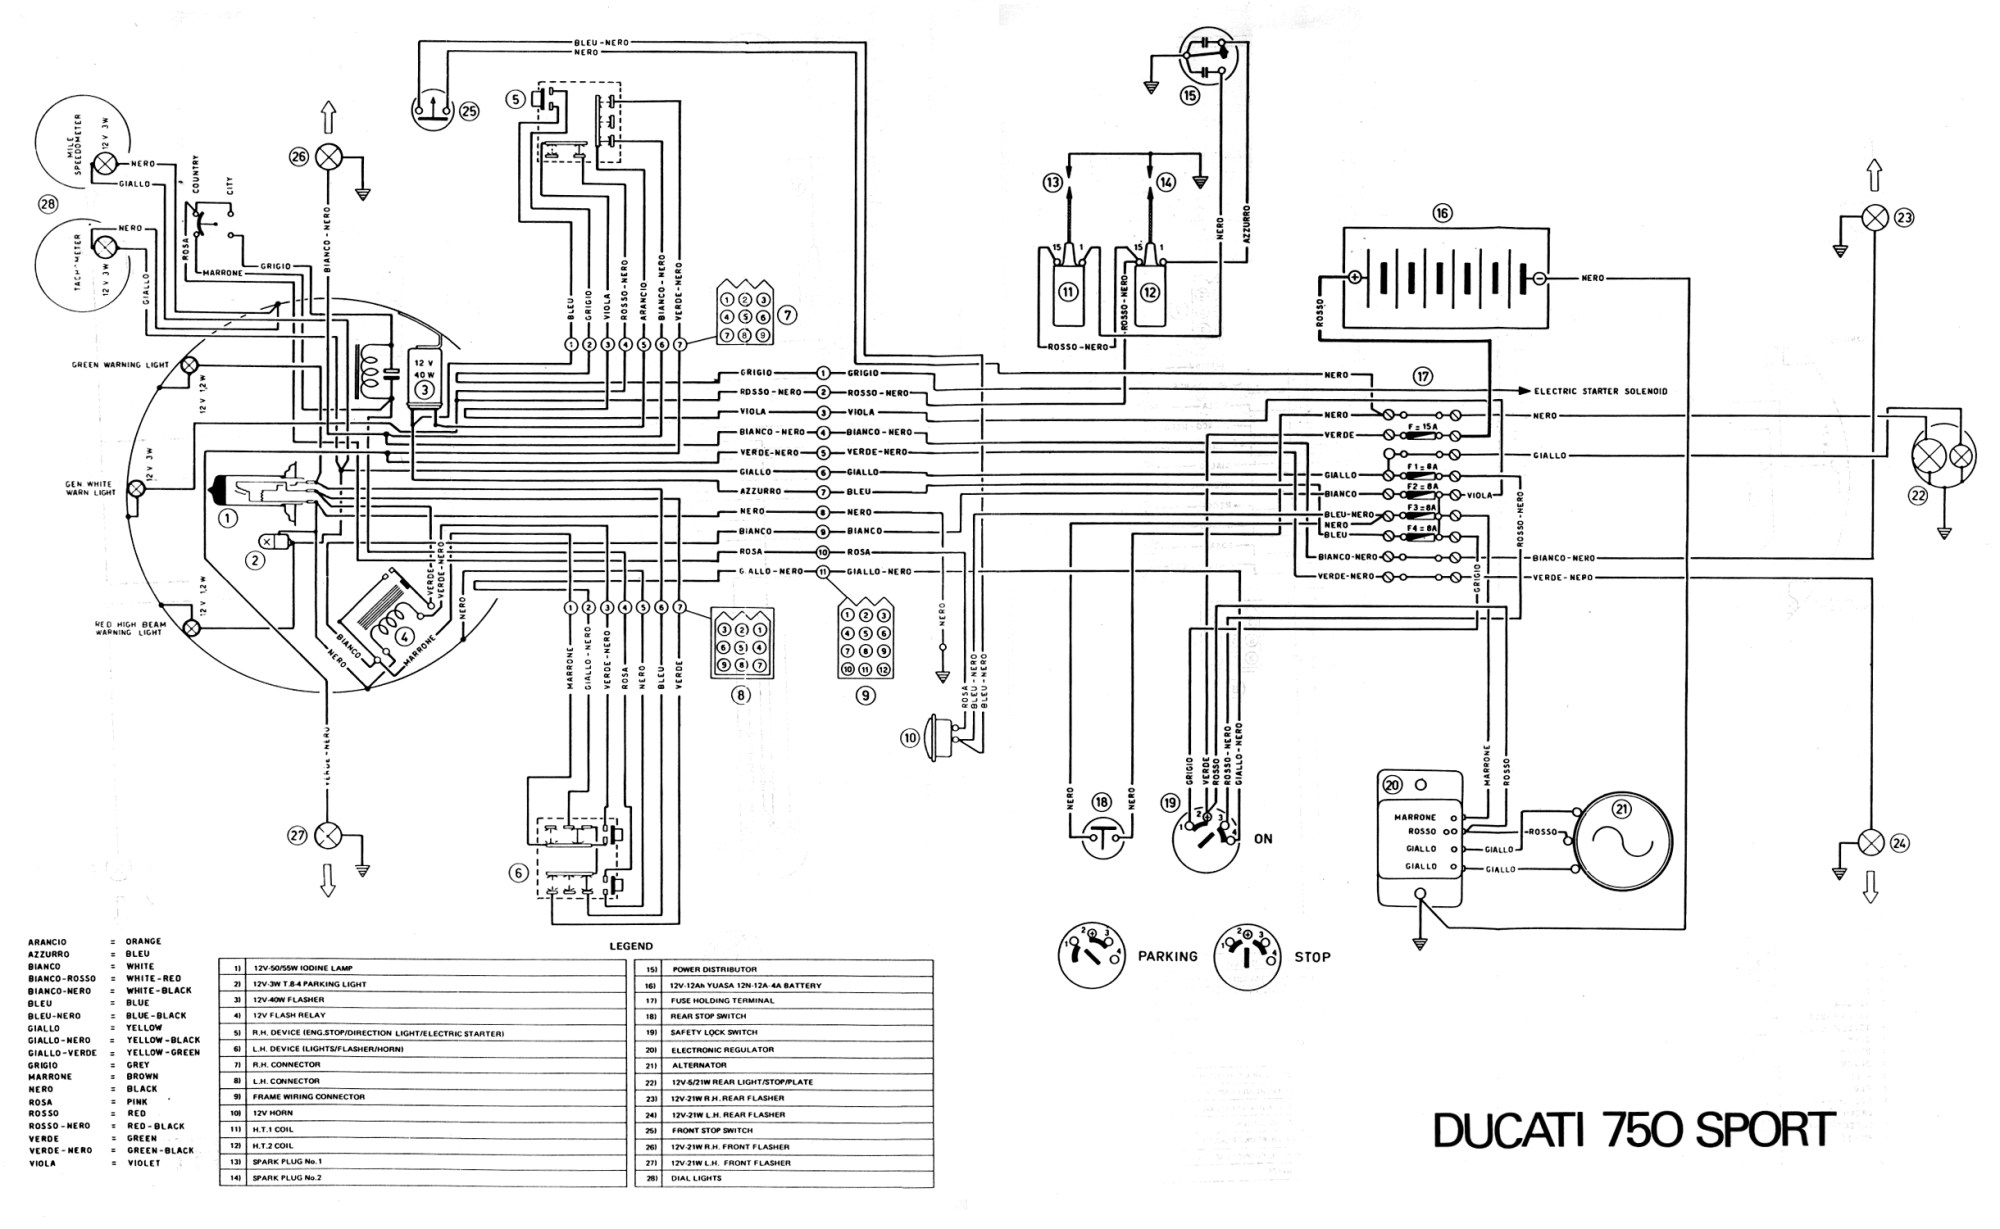 hight resolution of kubota 900 wiring diagram wiring diagrams schema kubota wiring diagram pdf kubota 900 wiring diagram wiring